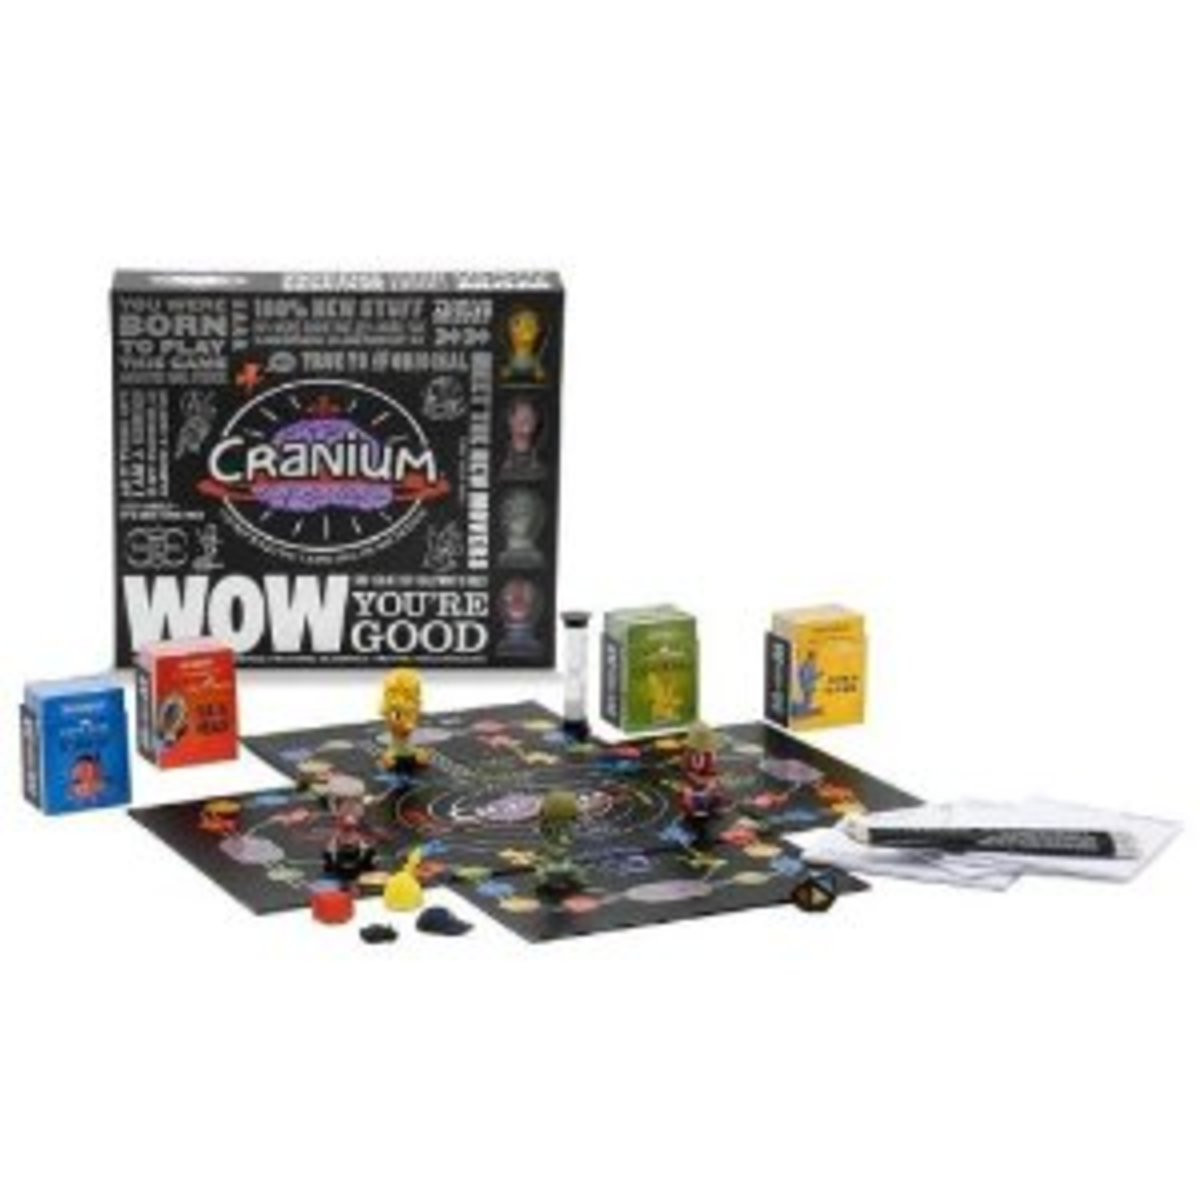 Cranium is a game where you move, act, sing, doodle ... showing off many talents!